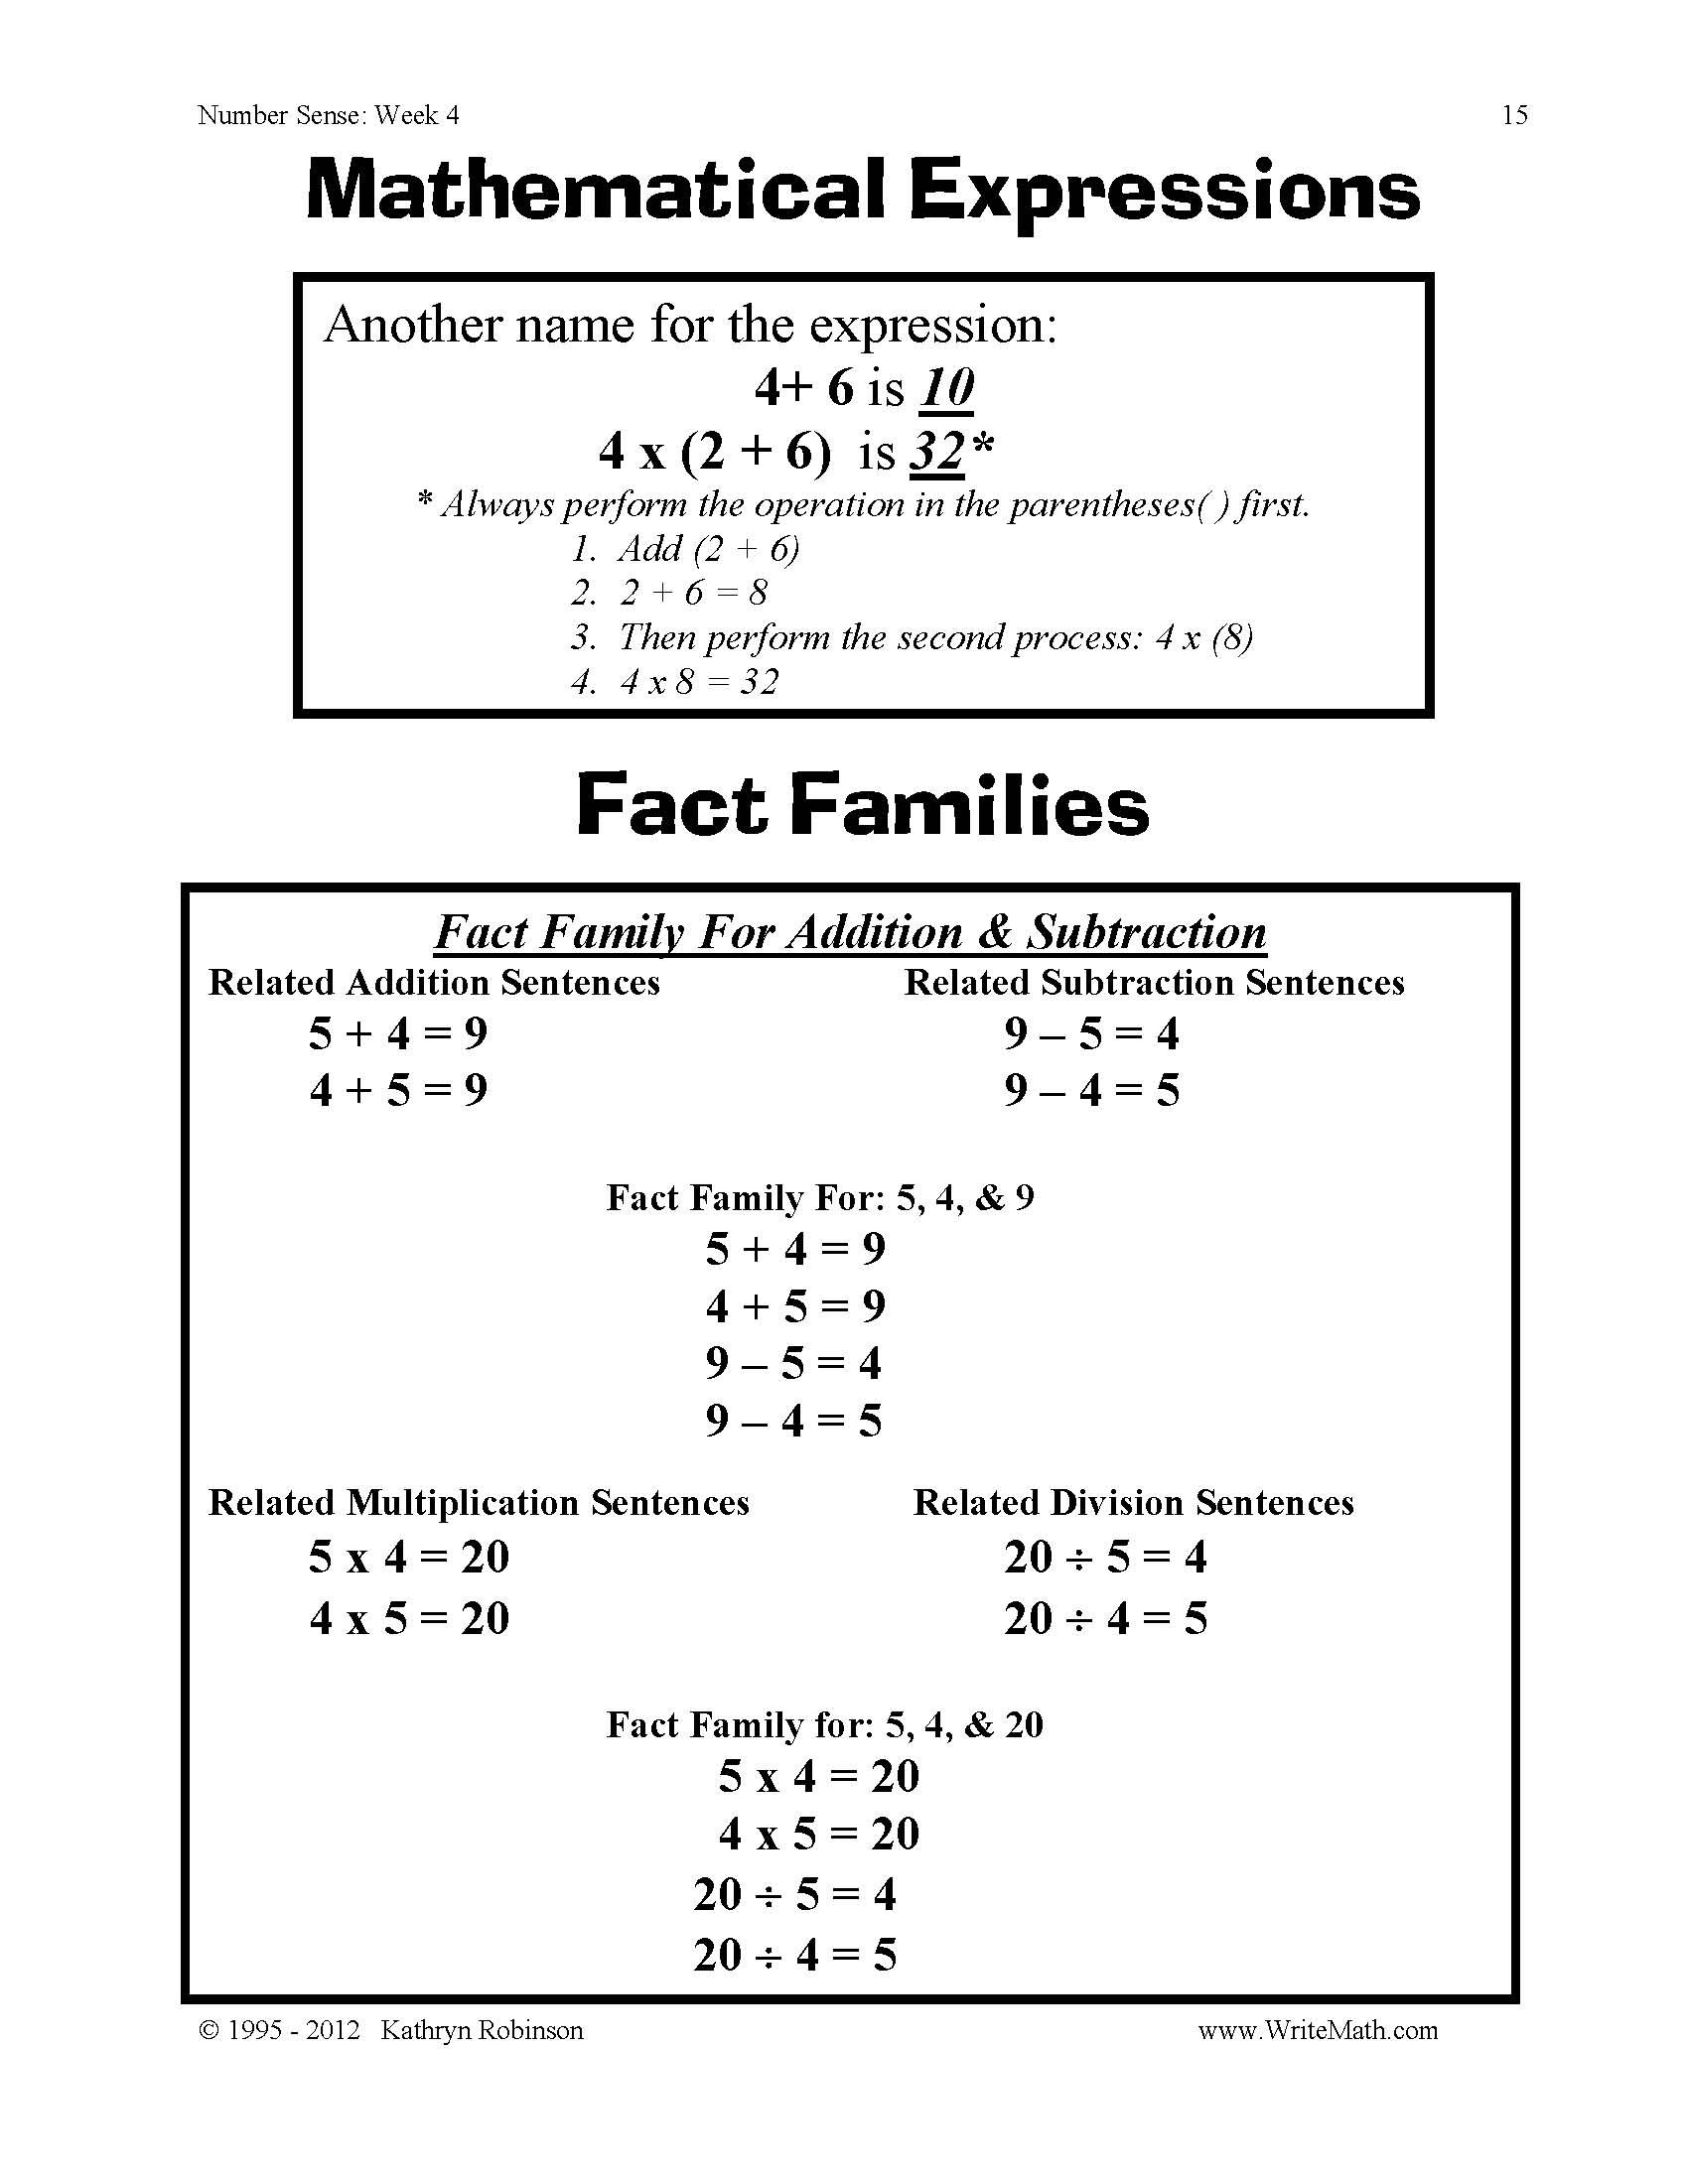 Number Sense Worksheets – Math Number Sense Worksheets